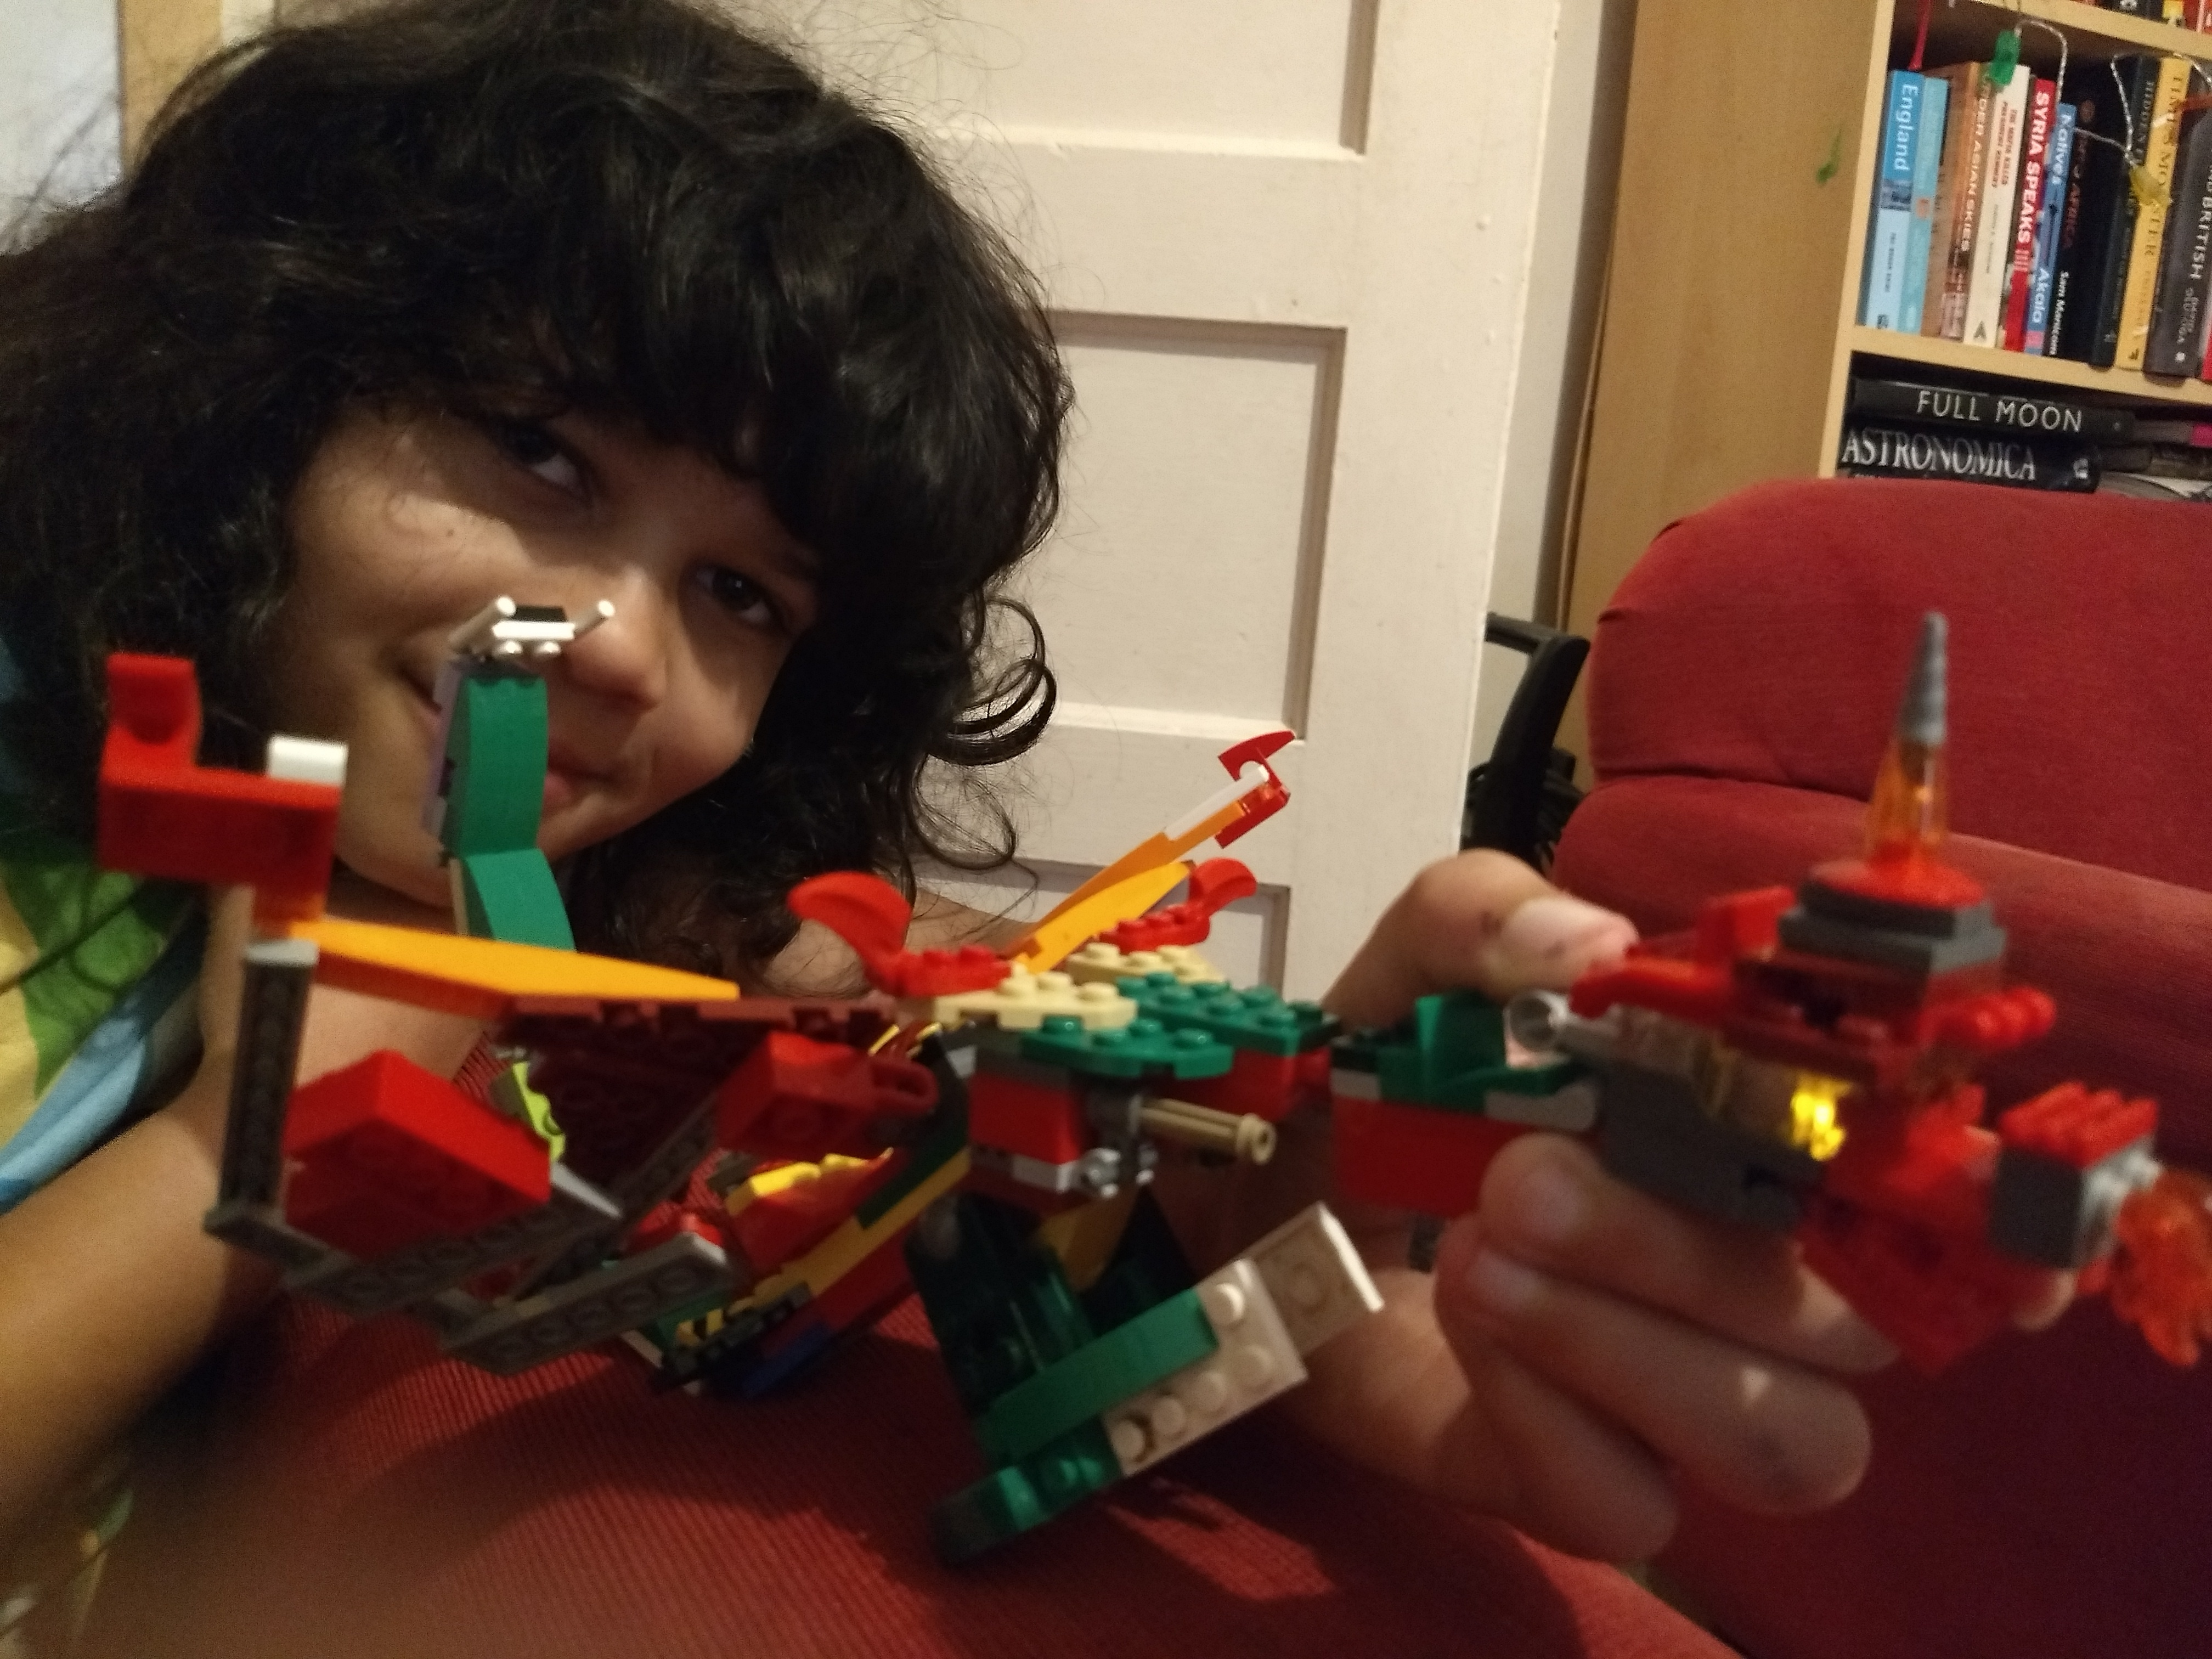 Errol holding his Scarlet emerald fire dragon made of lego